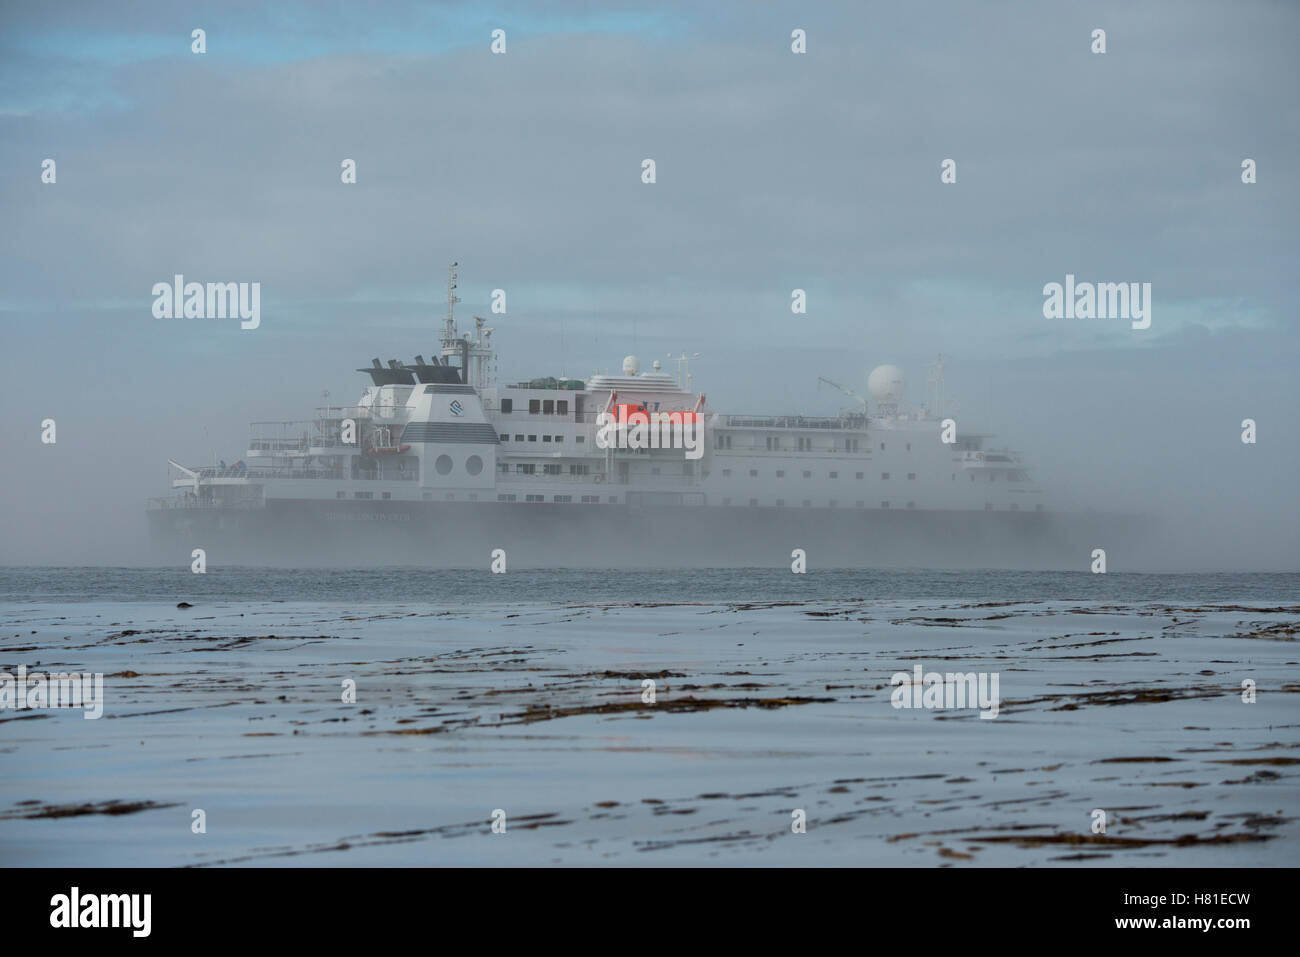 Russia, Kuril Islands, Yankicha Island. Silversea expedition ship, Silver Discoverer in the remote Kuril Islands. - Stock Image